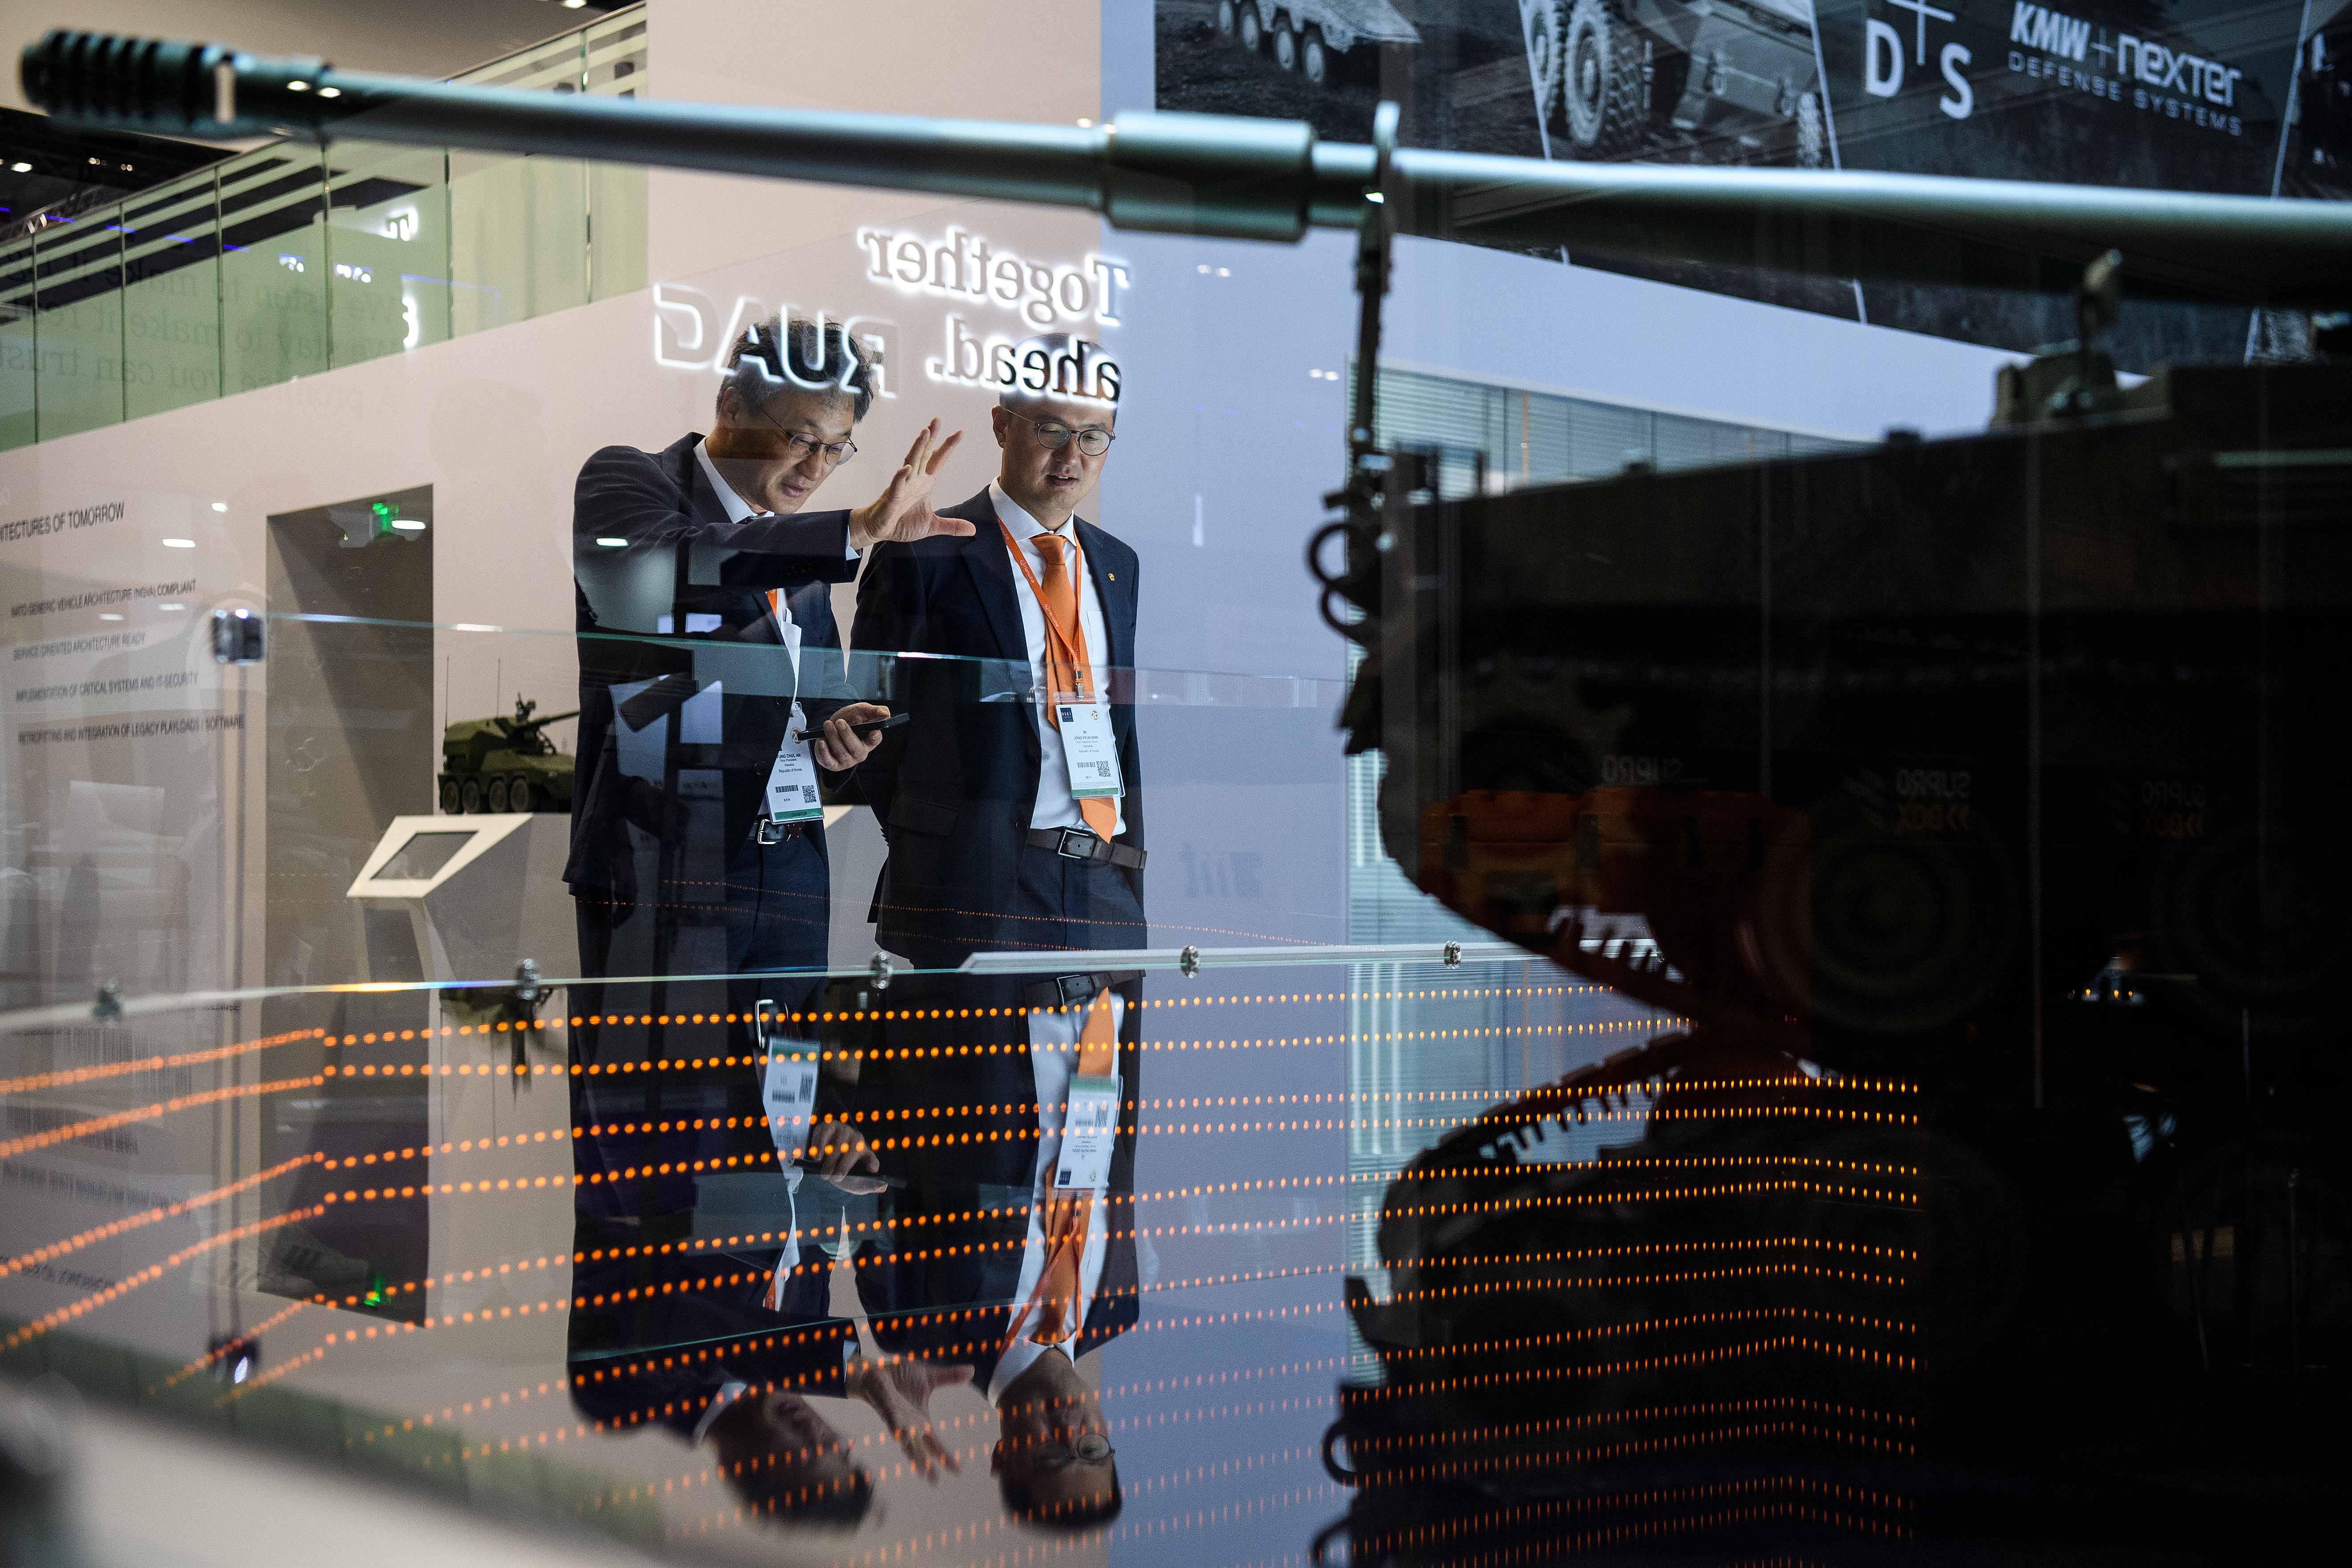 On the second day of the DSEI arms fair, vice president of the Hanwha Group, Byung Chul An, left, looks at a model of the K9 Thunder self-propelled howitzer. (Leon Neal/Getty Images)